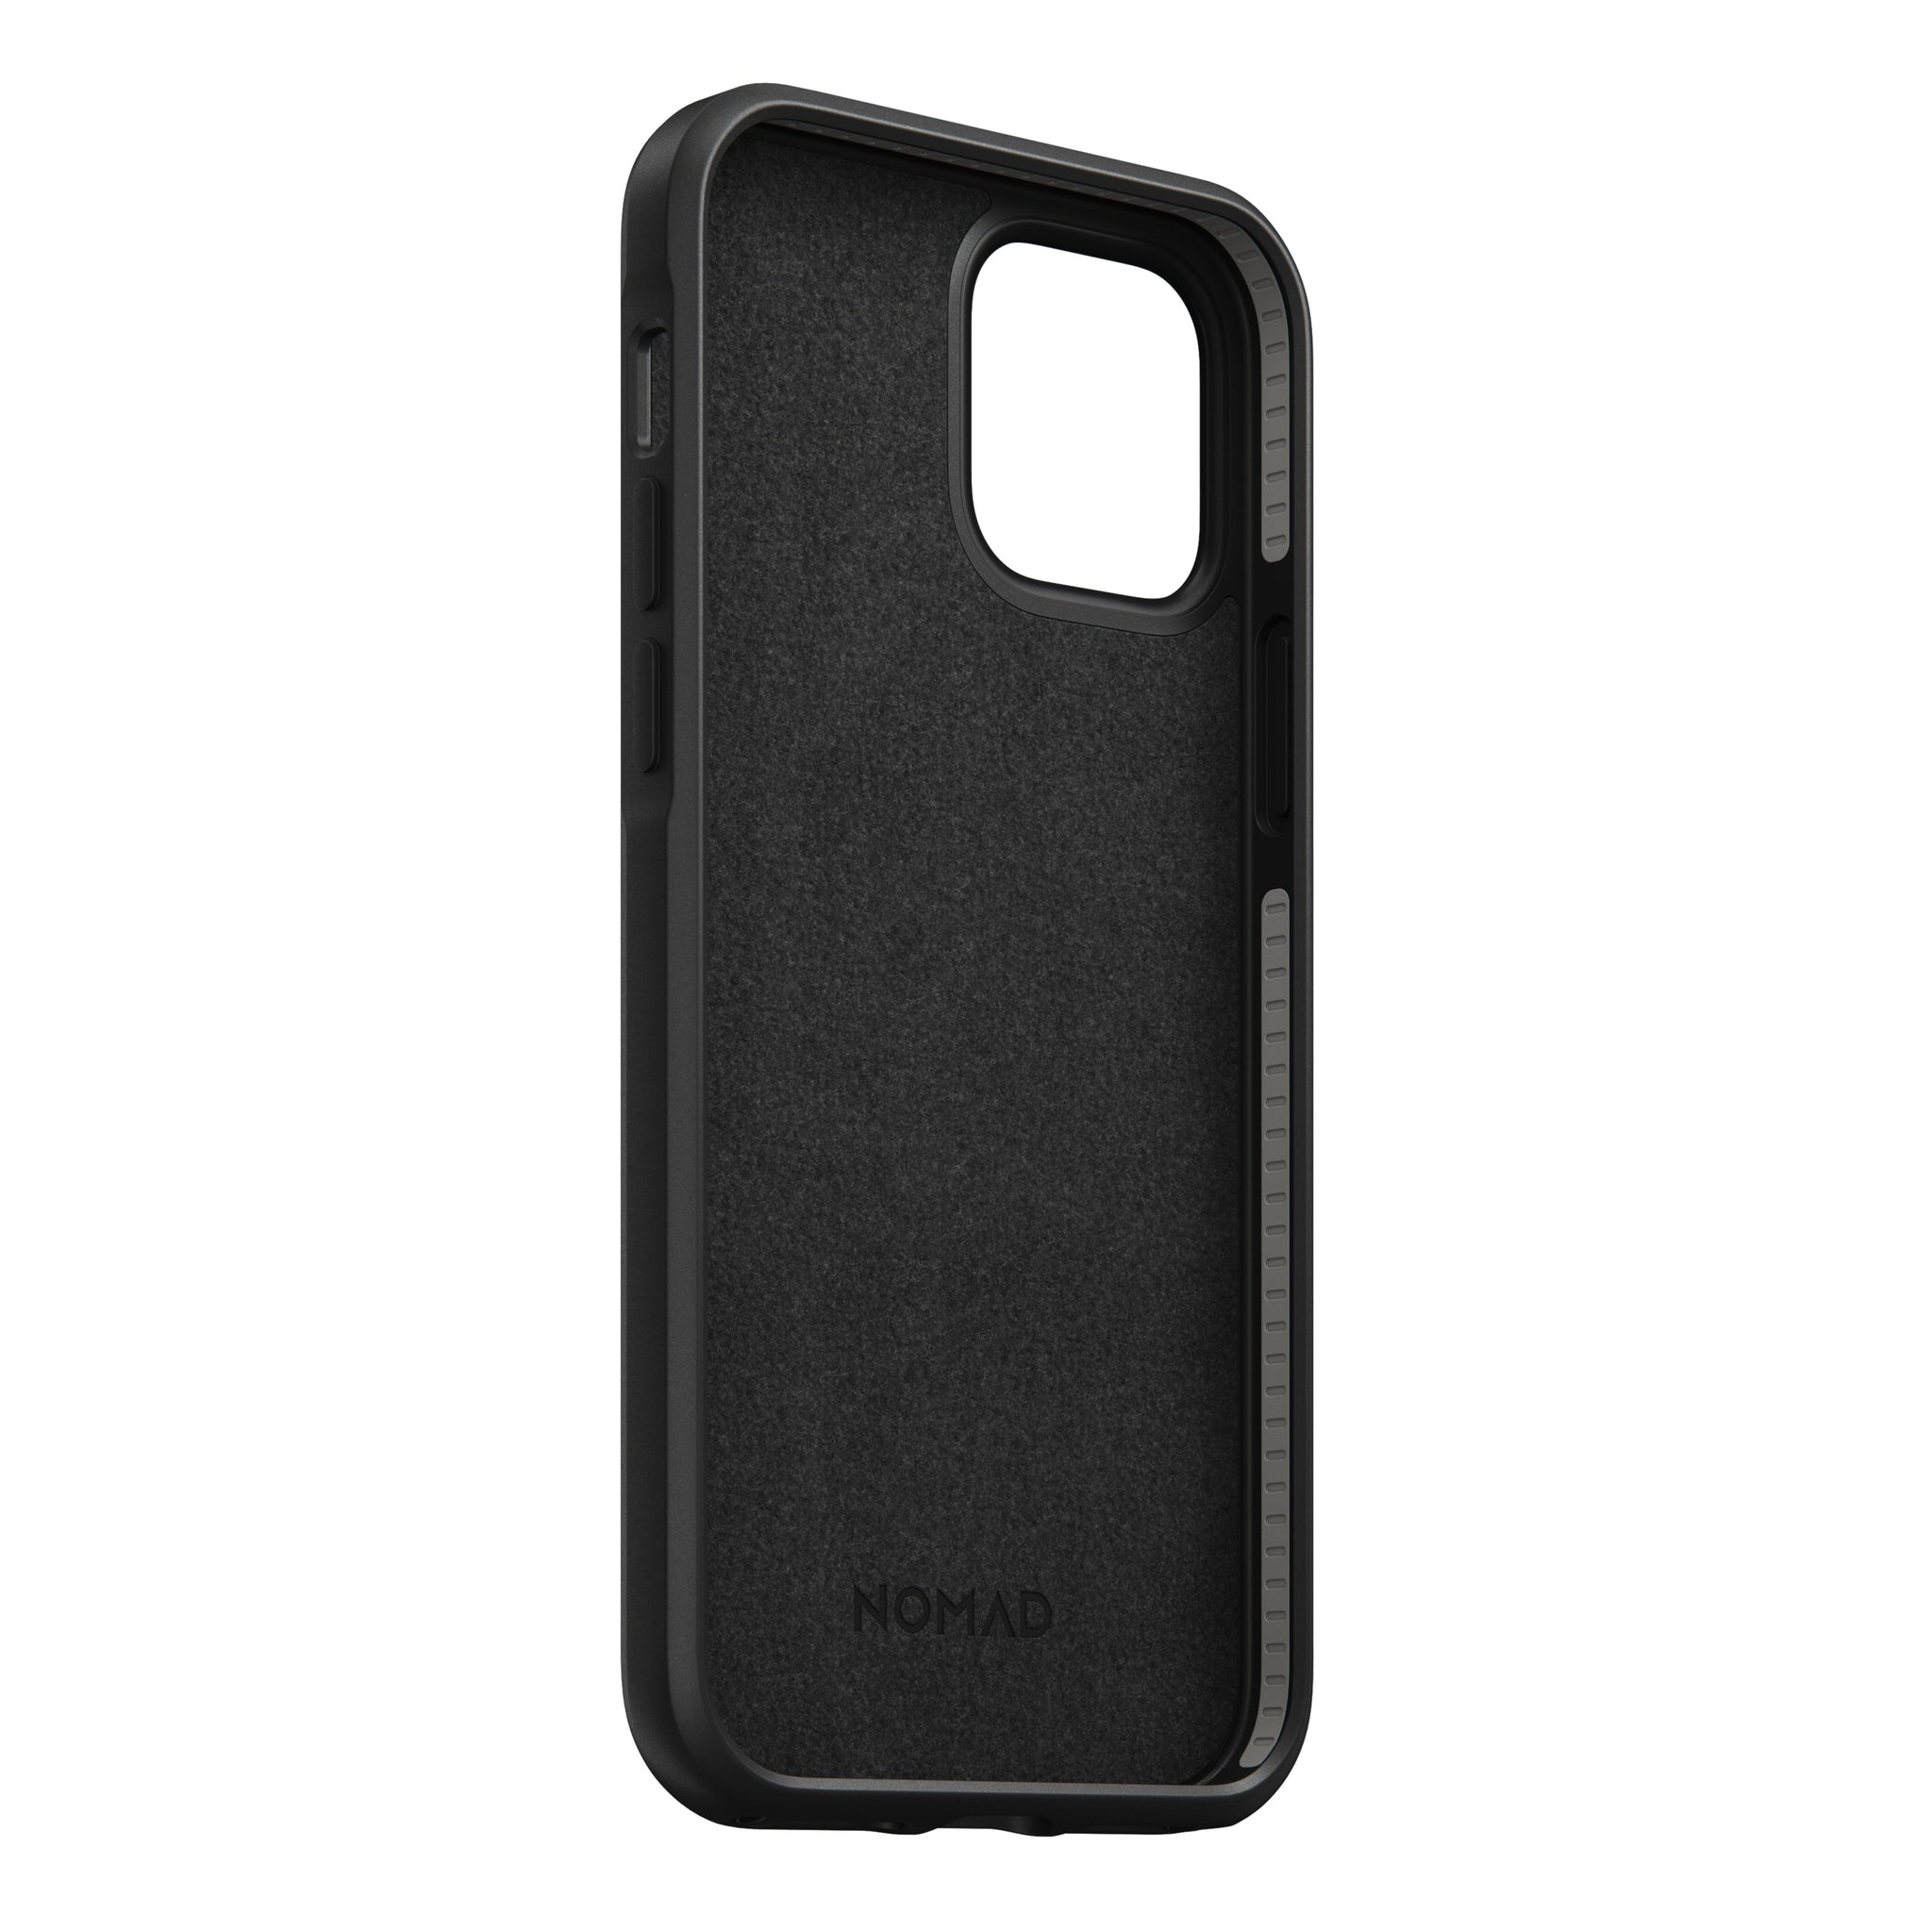 Nomad Rugged Case for iPhone 12 / 12 Pro - Black